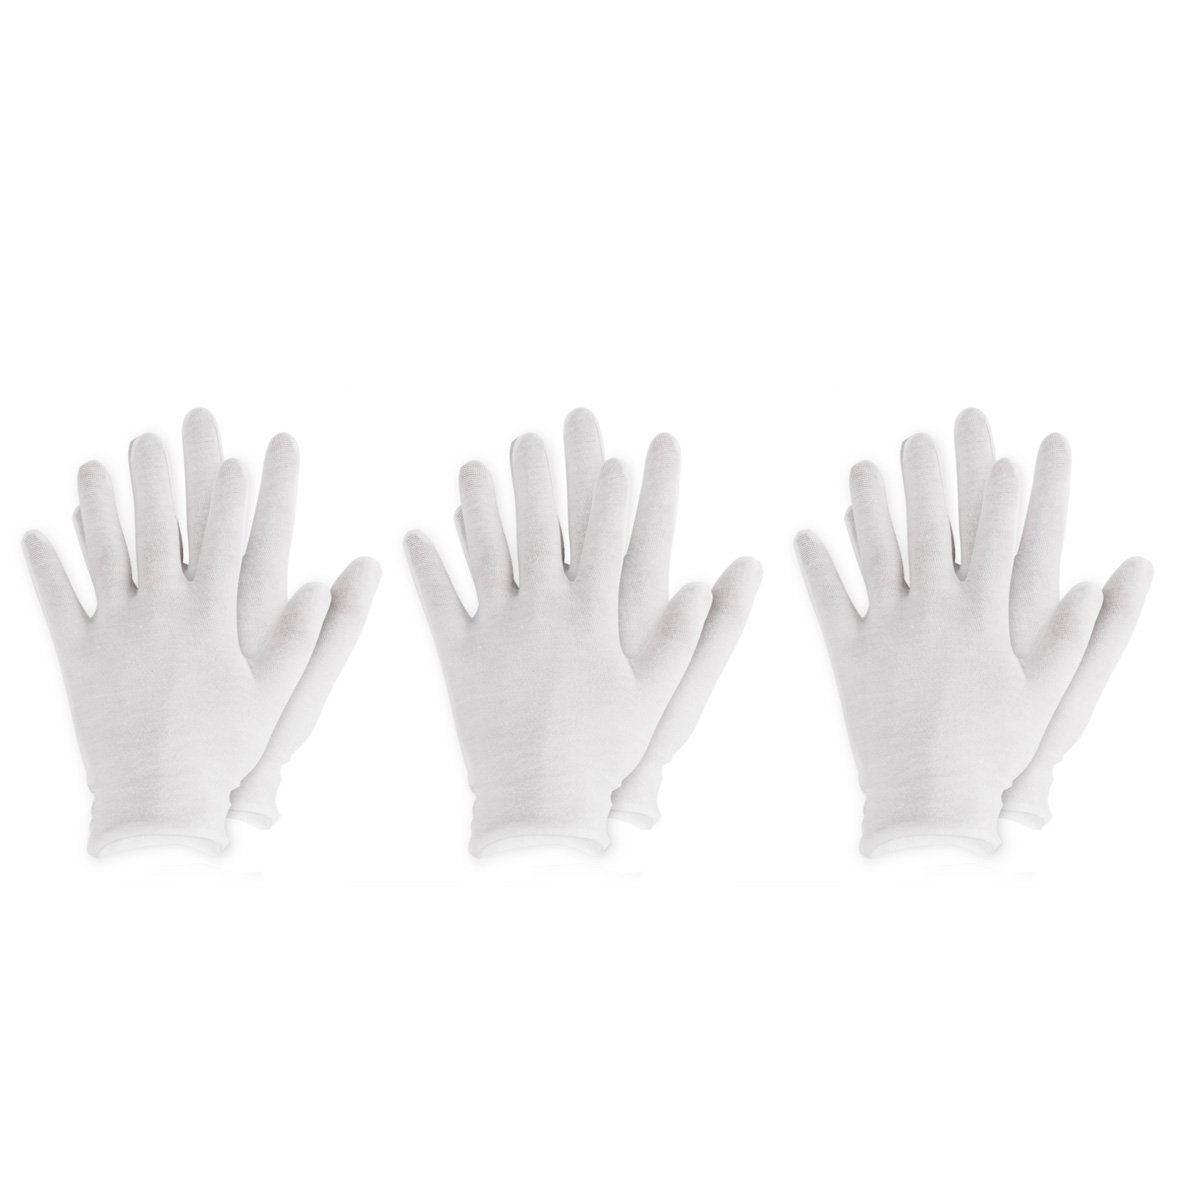 CHICTRY White Cotton Gloves Soft Lightweight Reusable Work Gloves for Dry Hand Moisturizing Hand Spa and Coin Jewelry Inspection 12 Pairs One Size